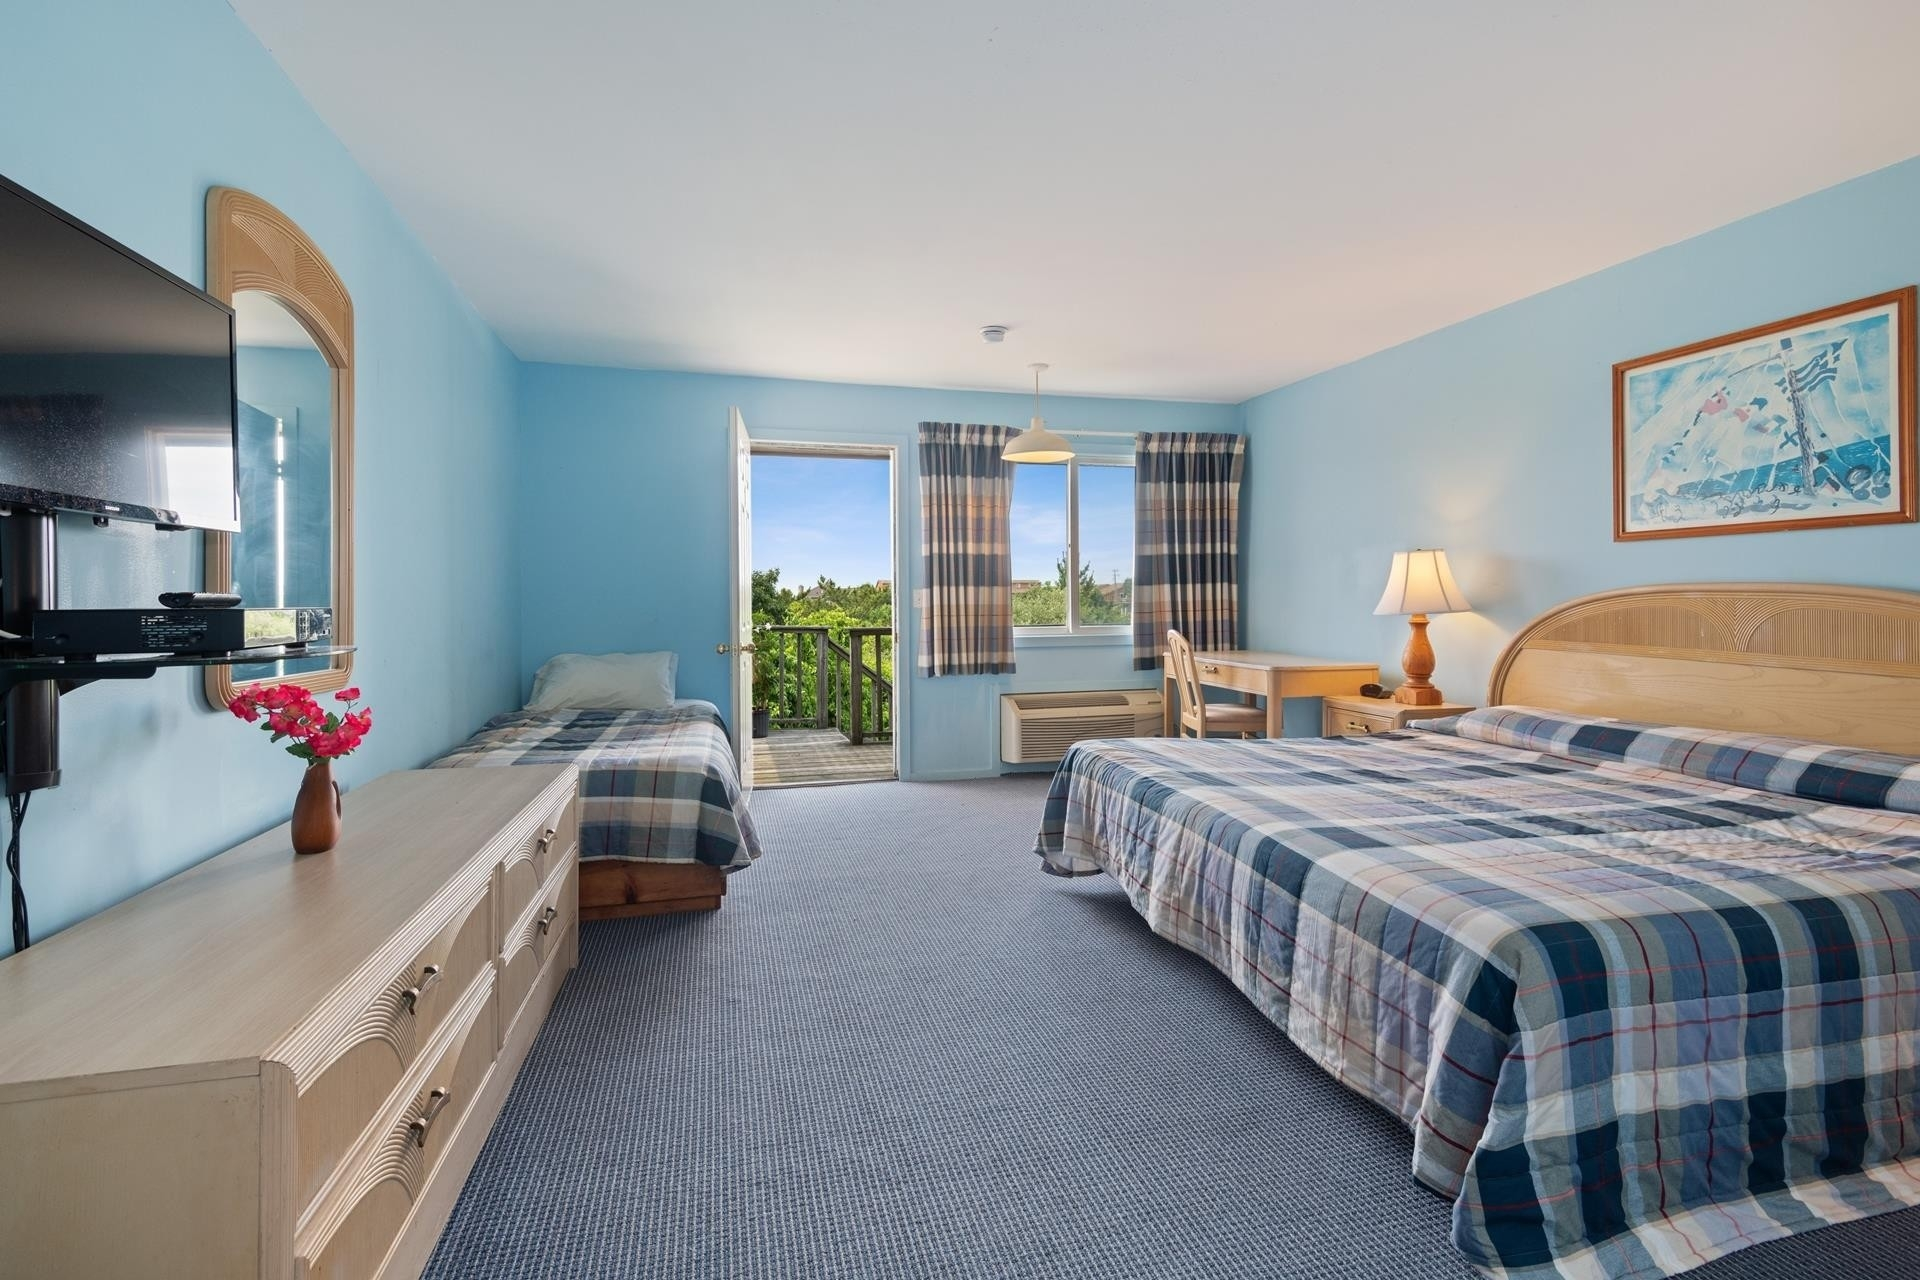 7. Hotel for Sale at Montauk, NY 11954